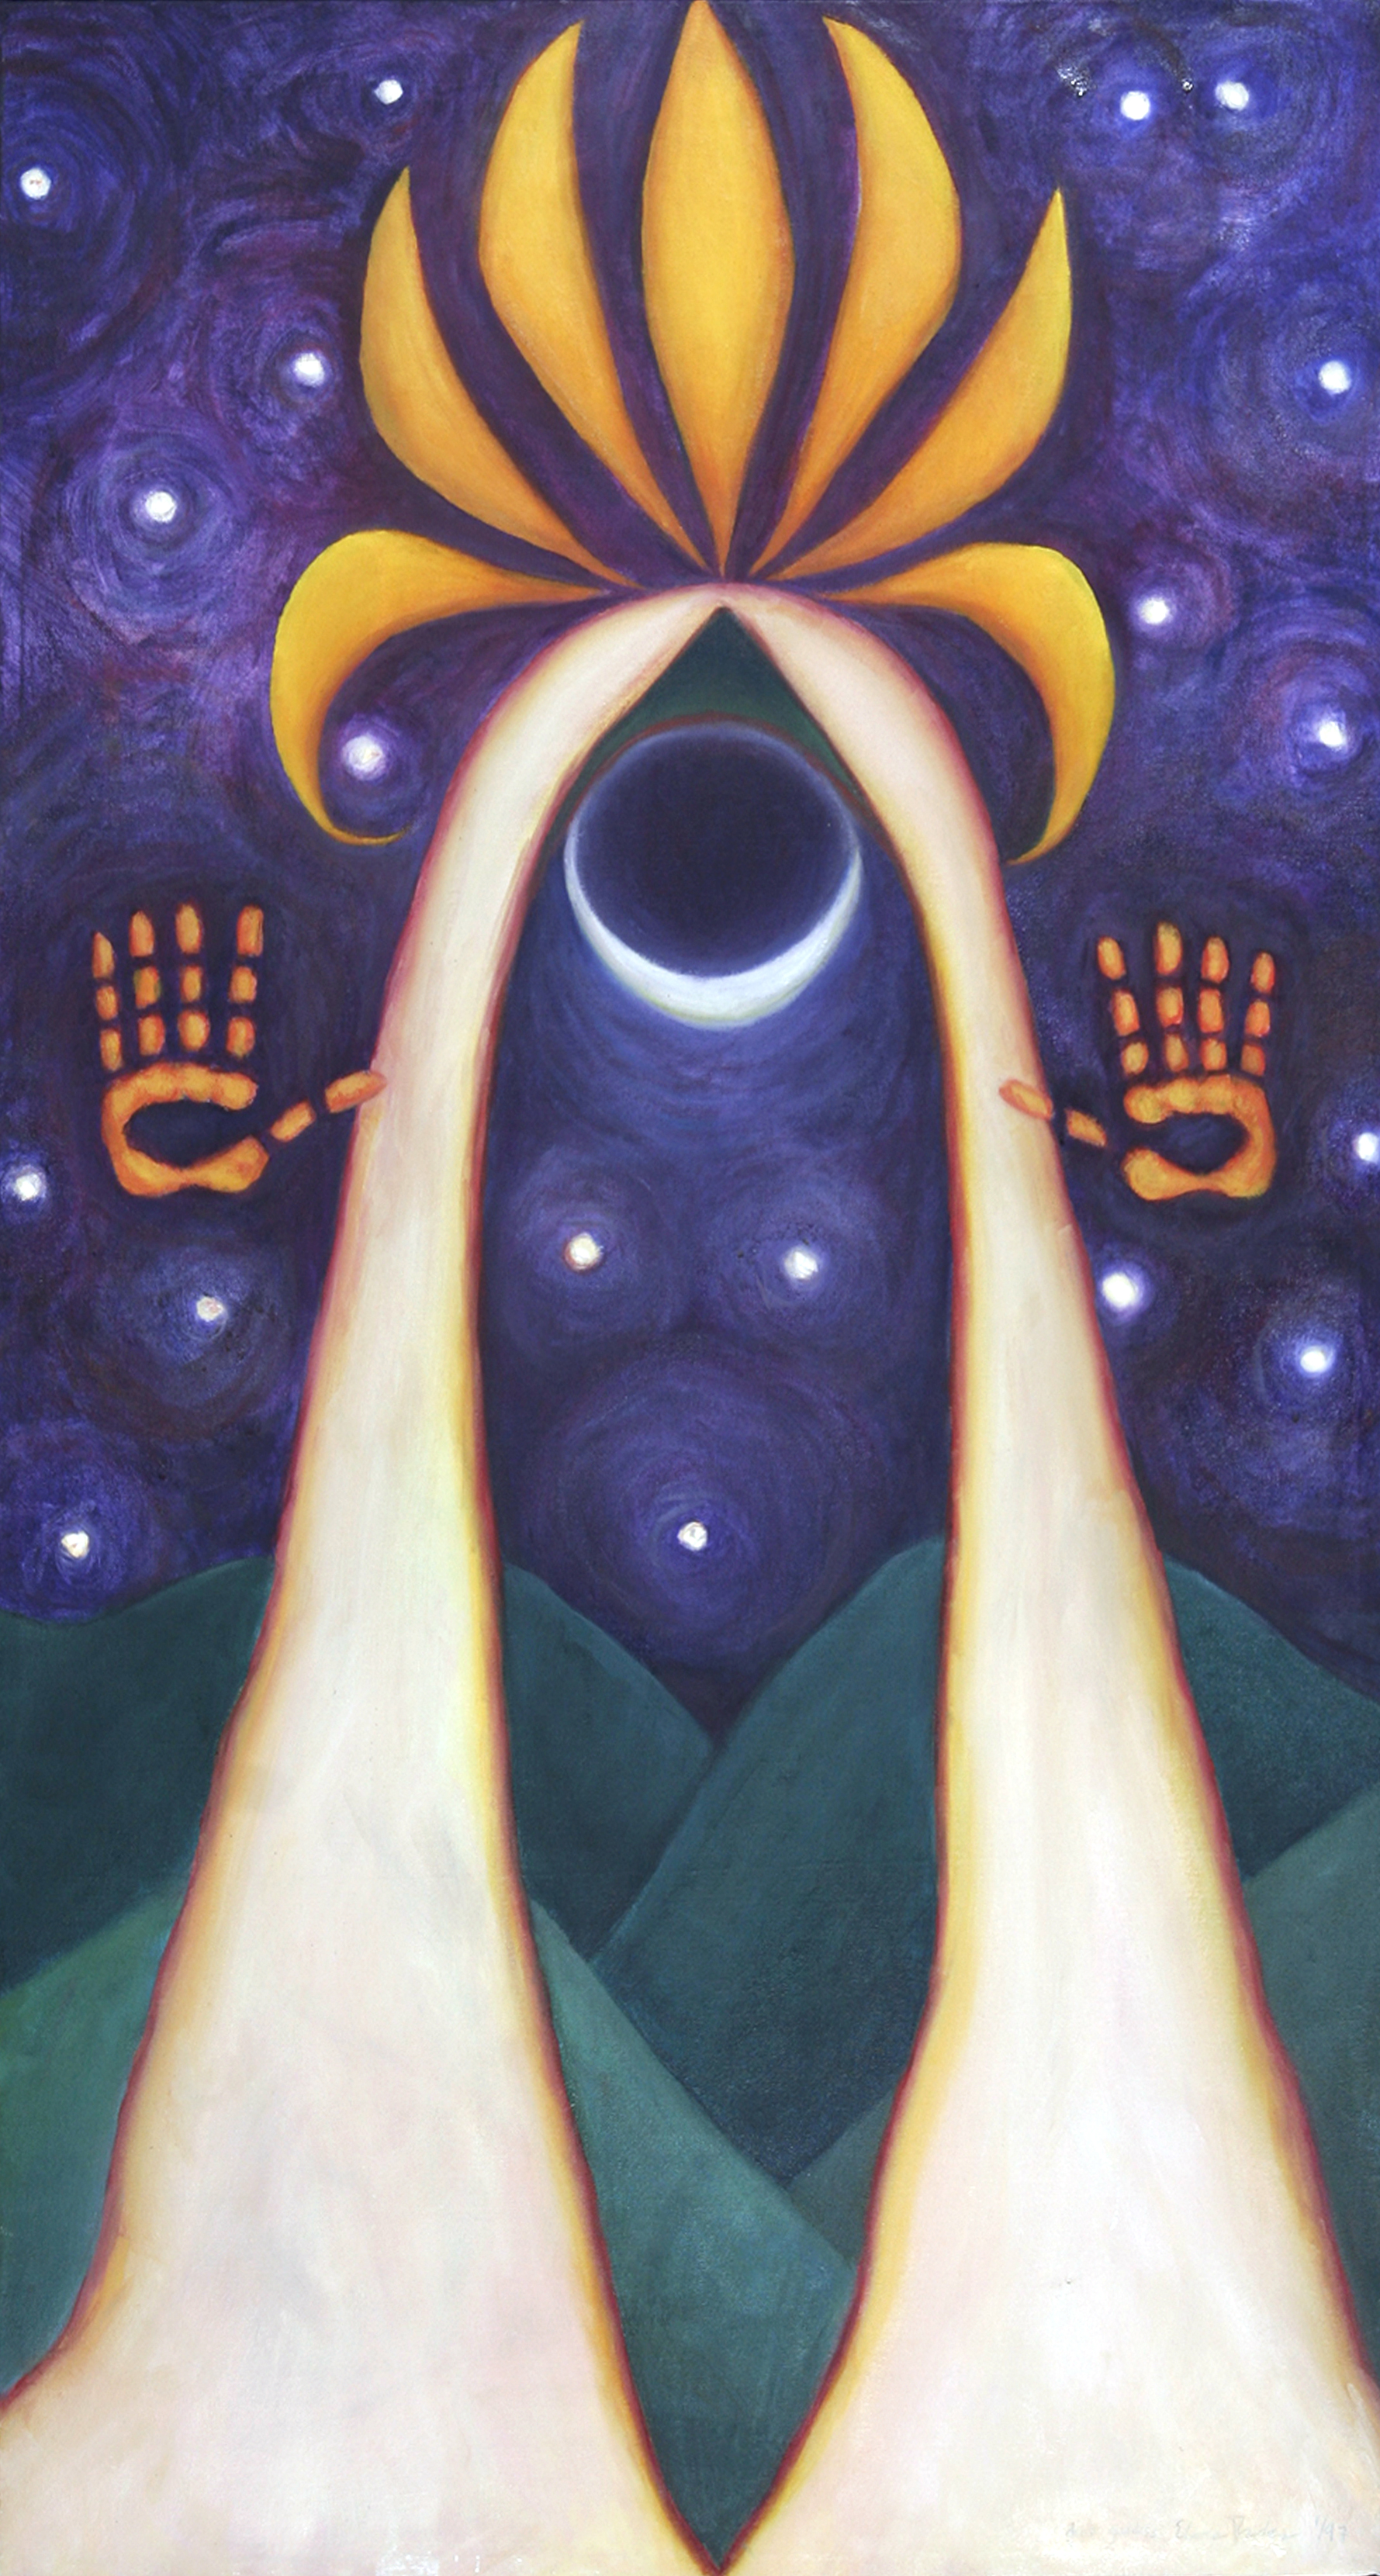 "Dark Goddess, 1996, Oil on canvas 46.5""h x 25w"", Private Collection, Eleanor Ruckman"